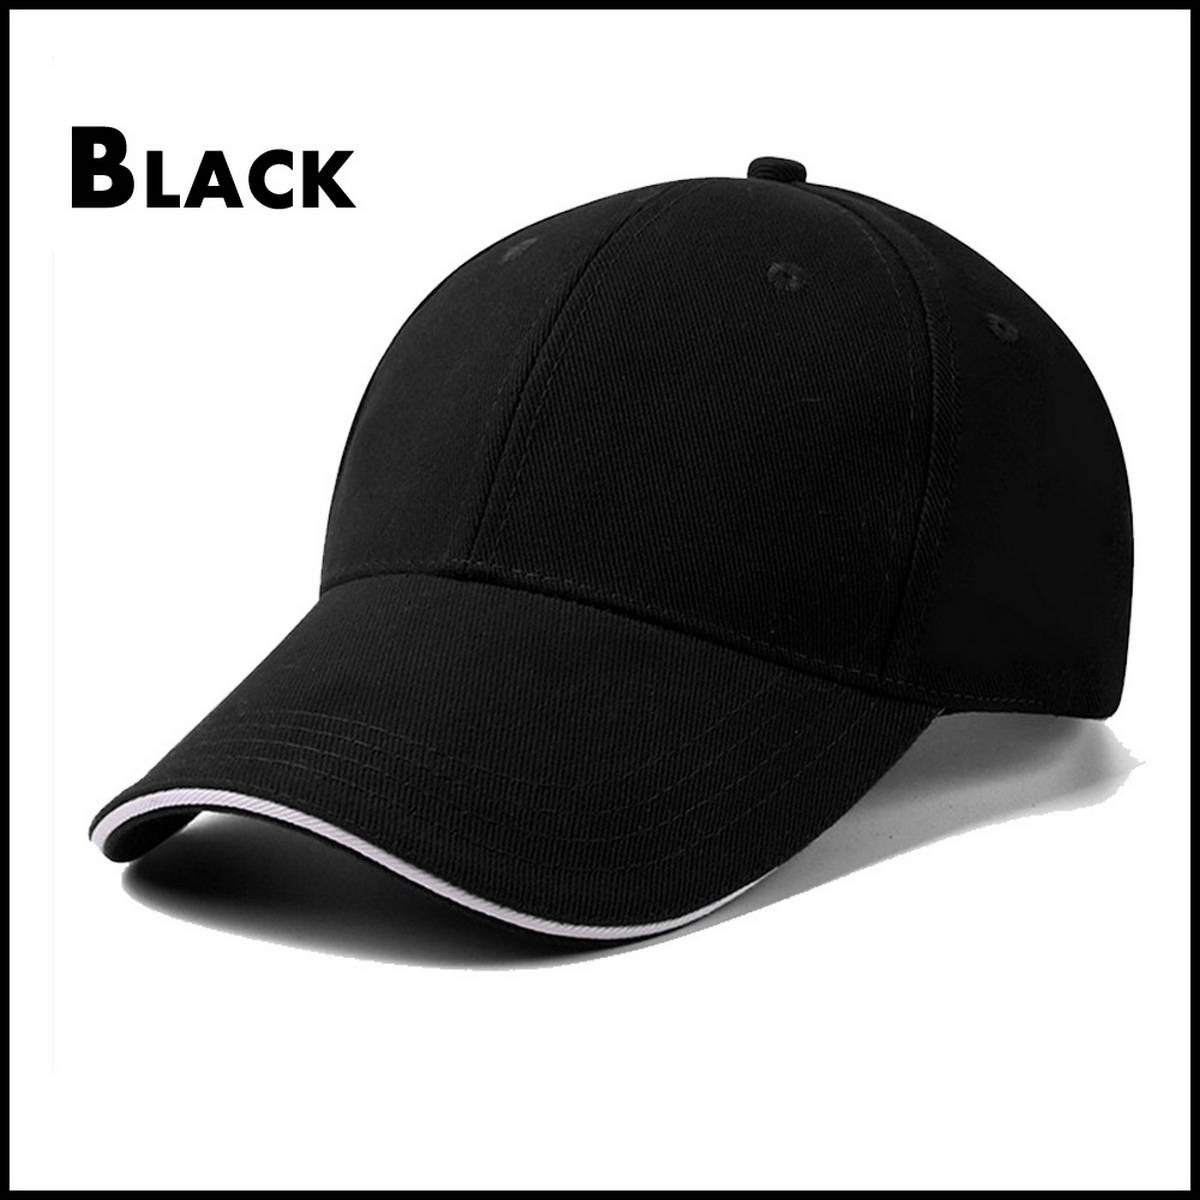 Adults Cap with Curved Brim with Adjustable Strap and Buckle